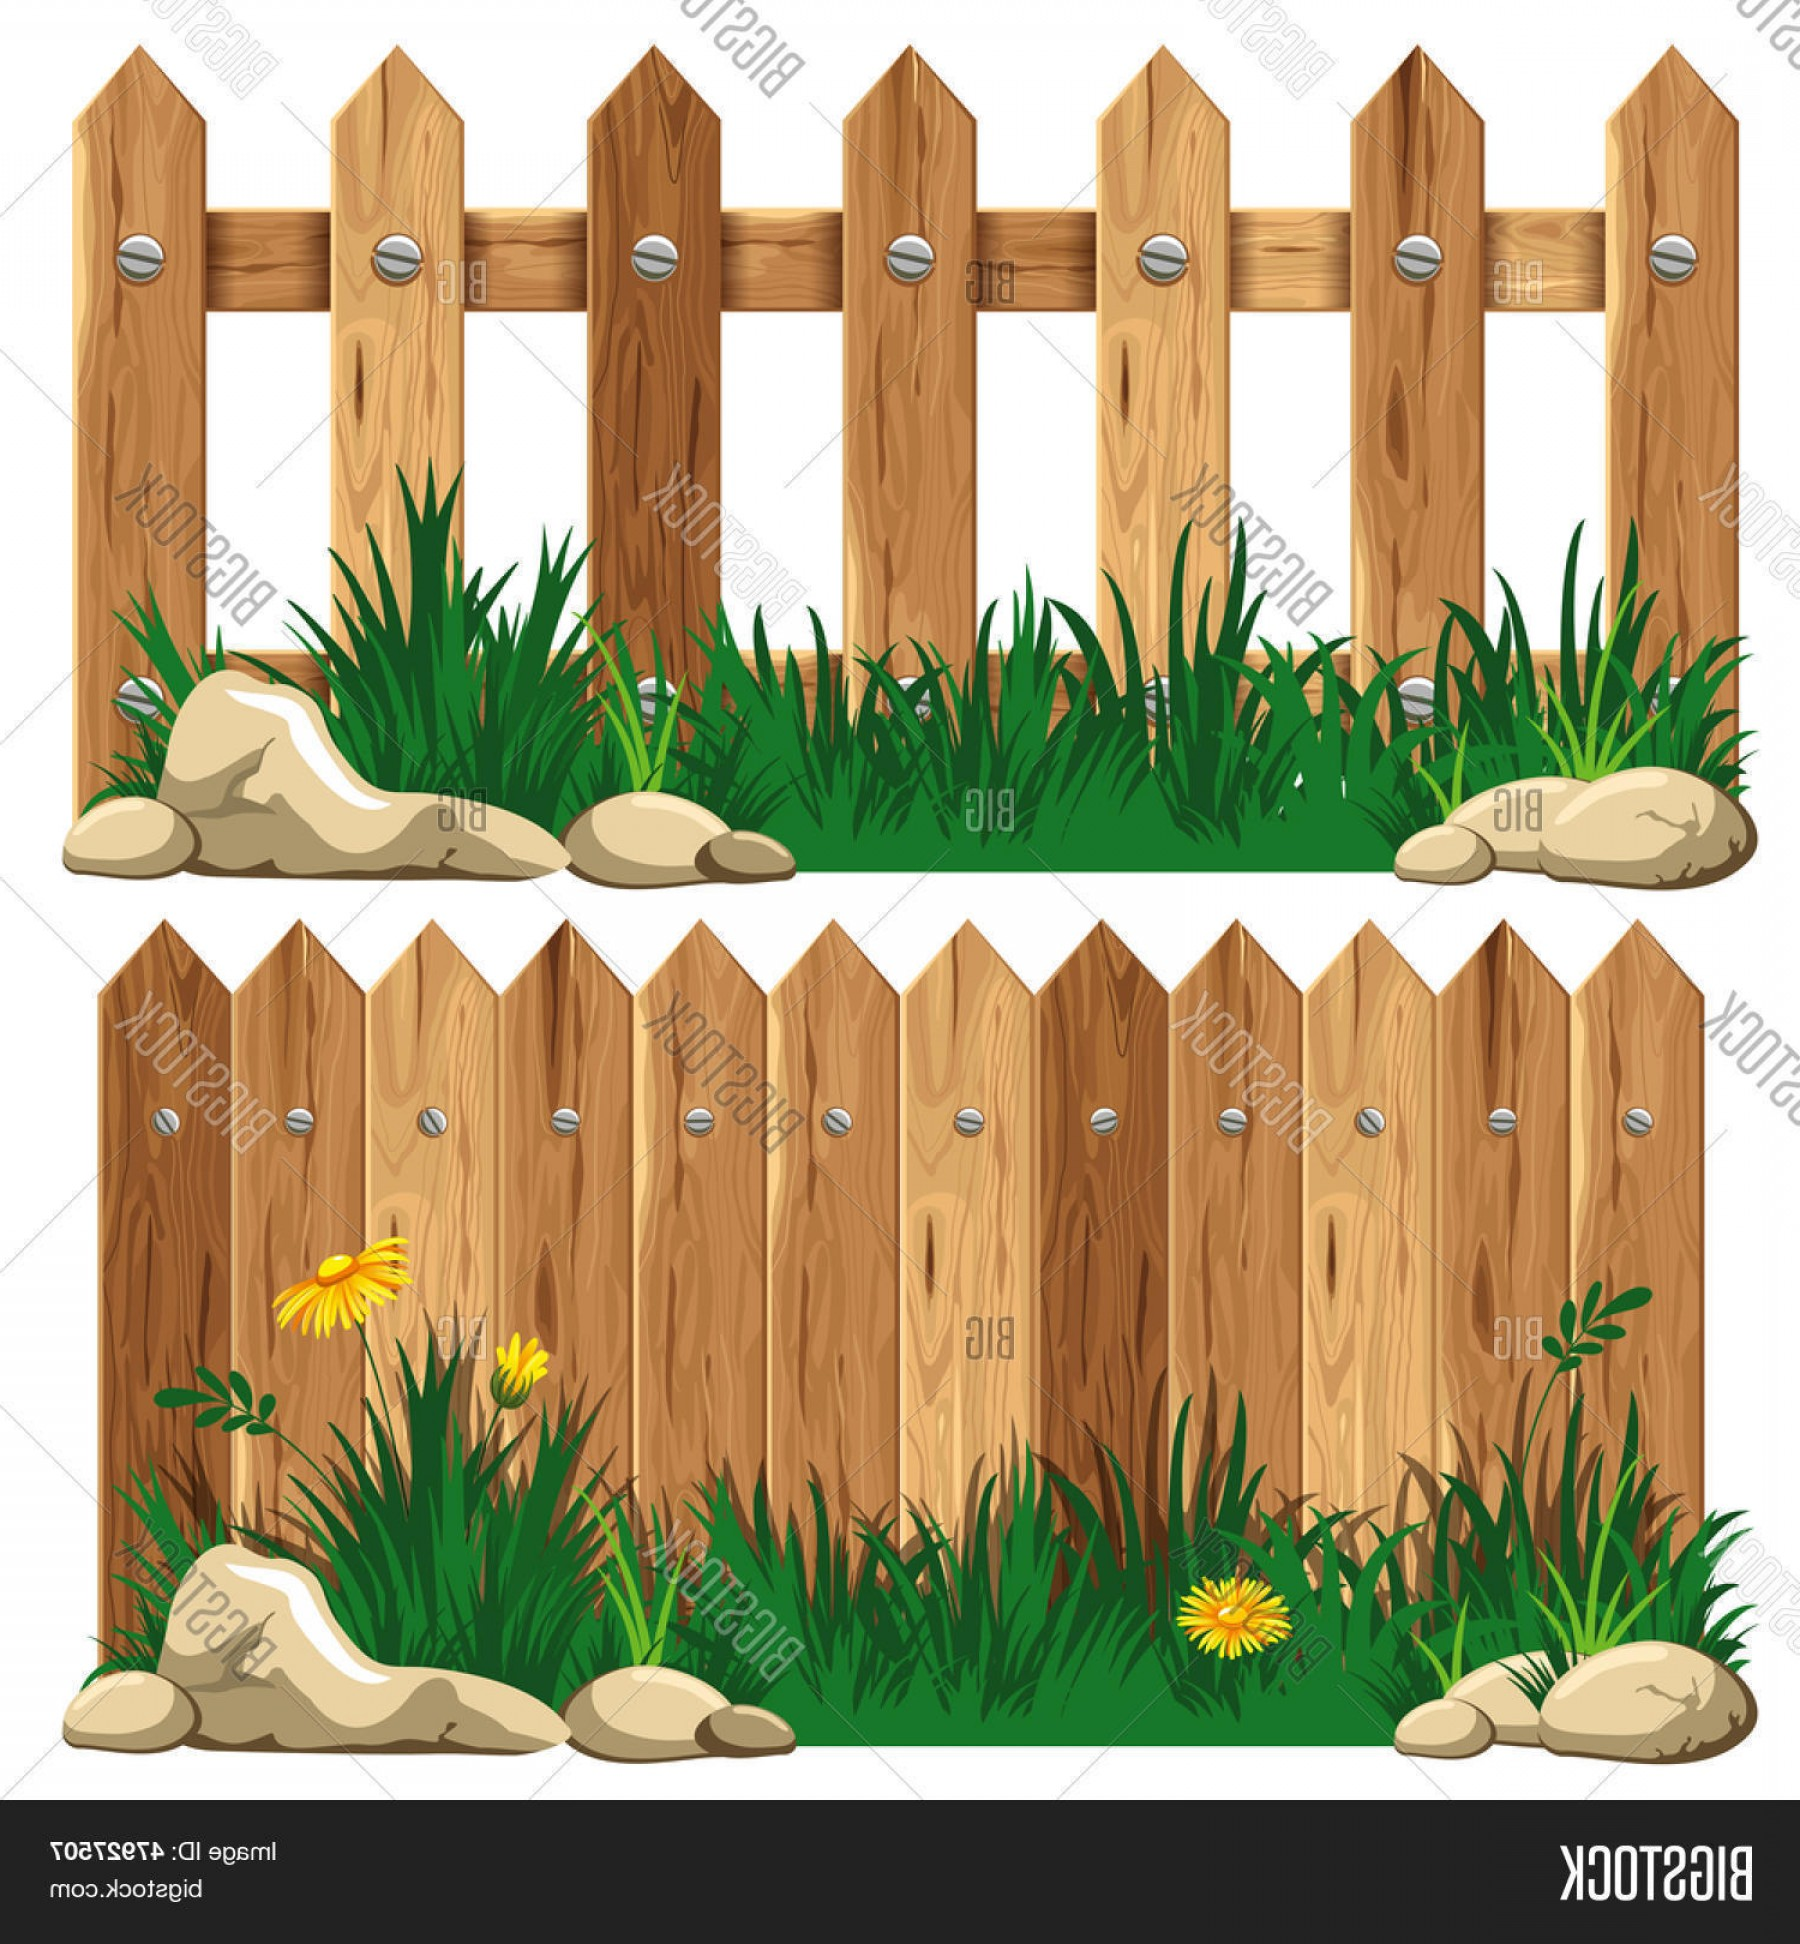 Outdoor Fence Vector: Stock Vector Wooden Fence And Grass Vector Illustration